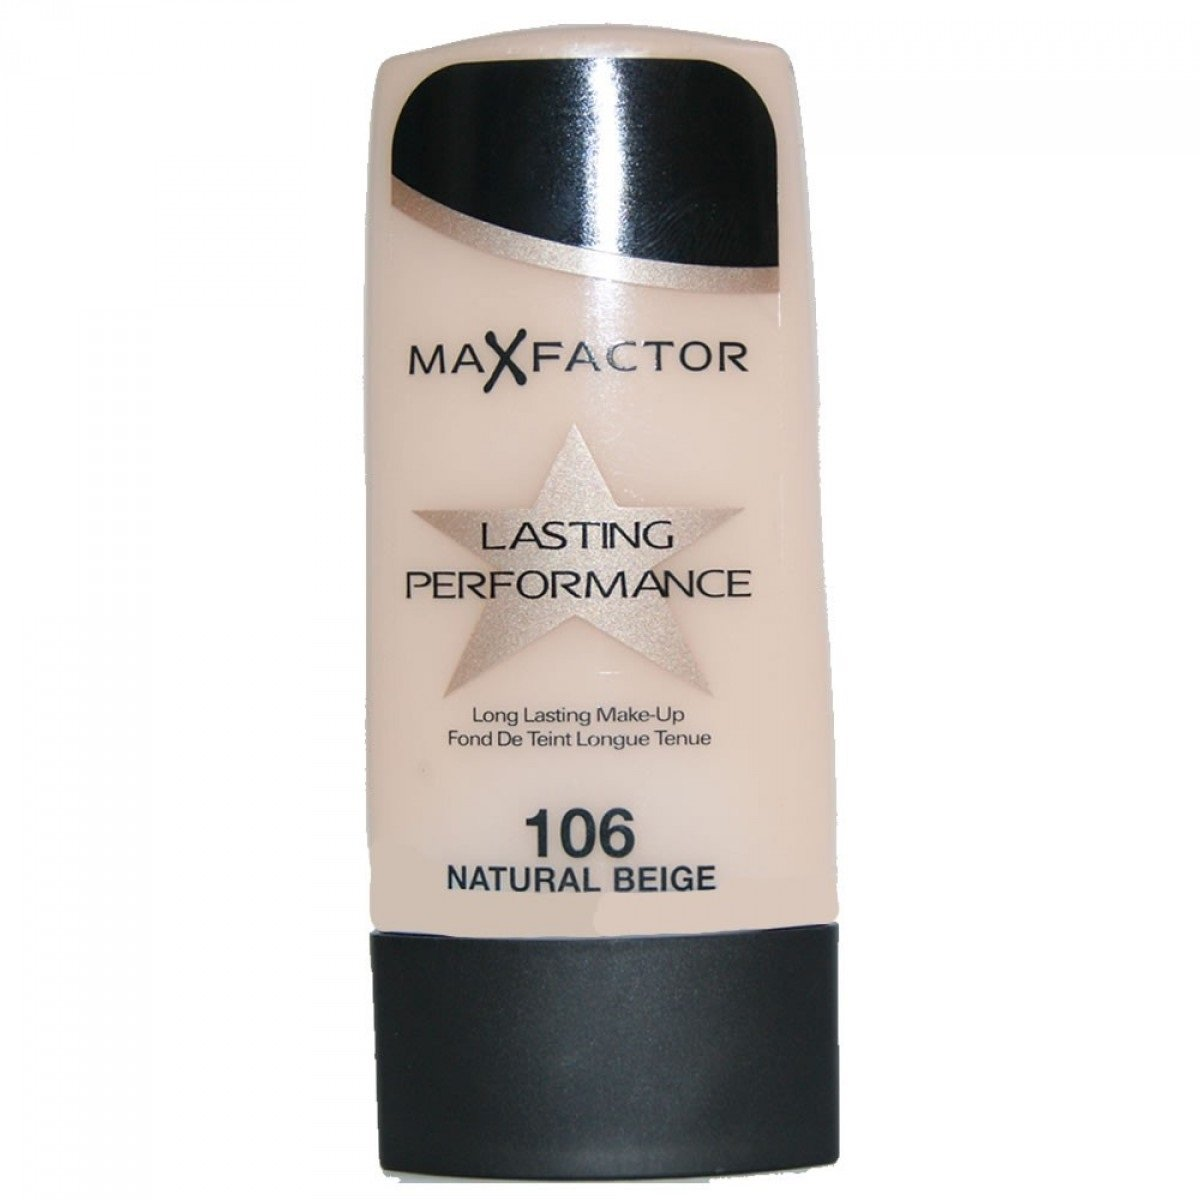 Max Factor Lasting Performance Foundation - 106 Natural Beige + FREE Curad Bandages 8 Ct.